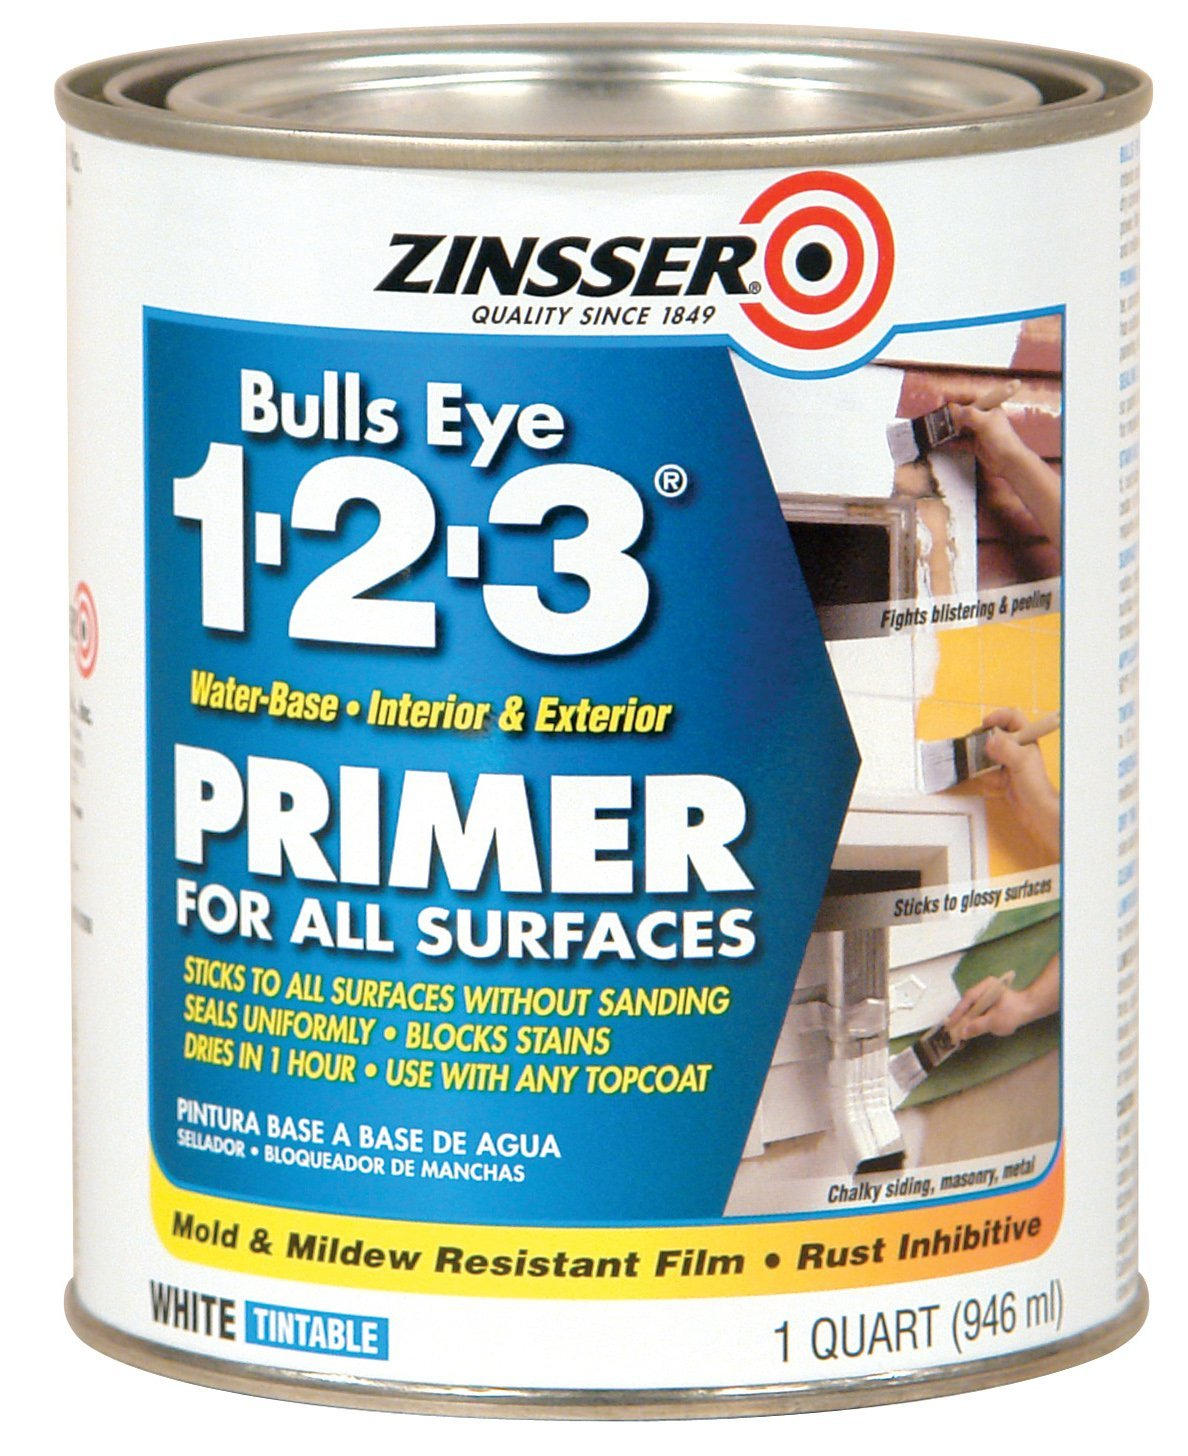 Types of Paint: Zinsser Primer